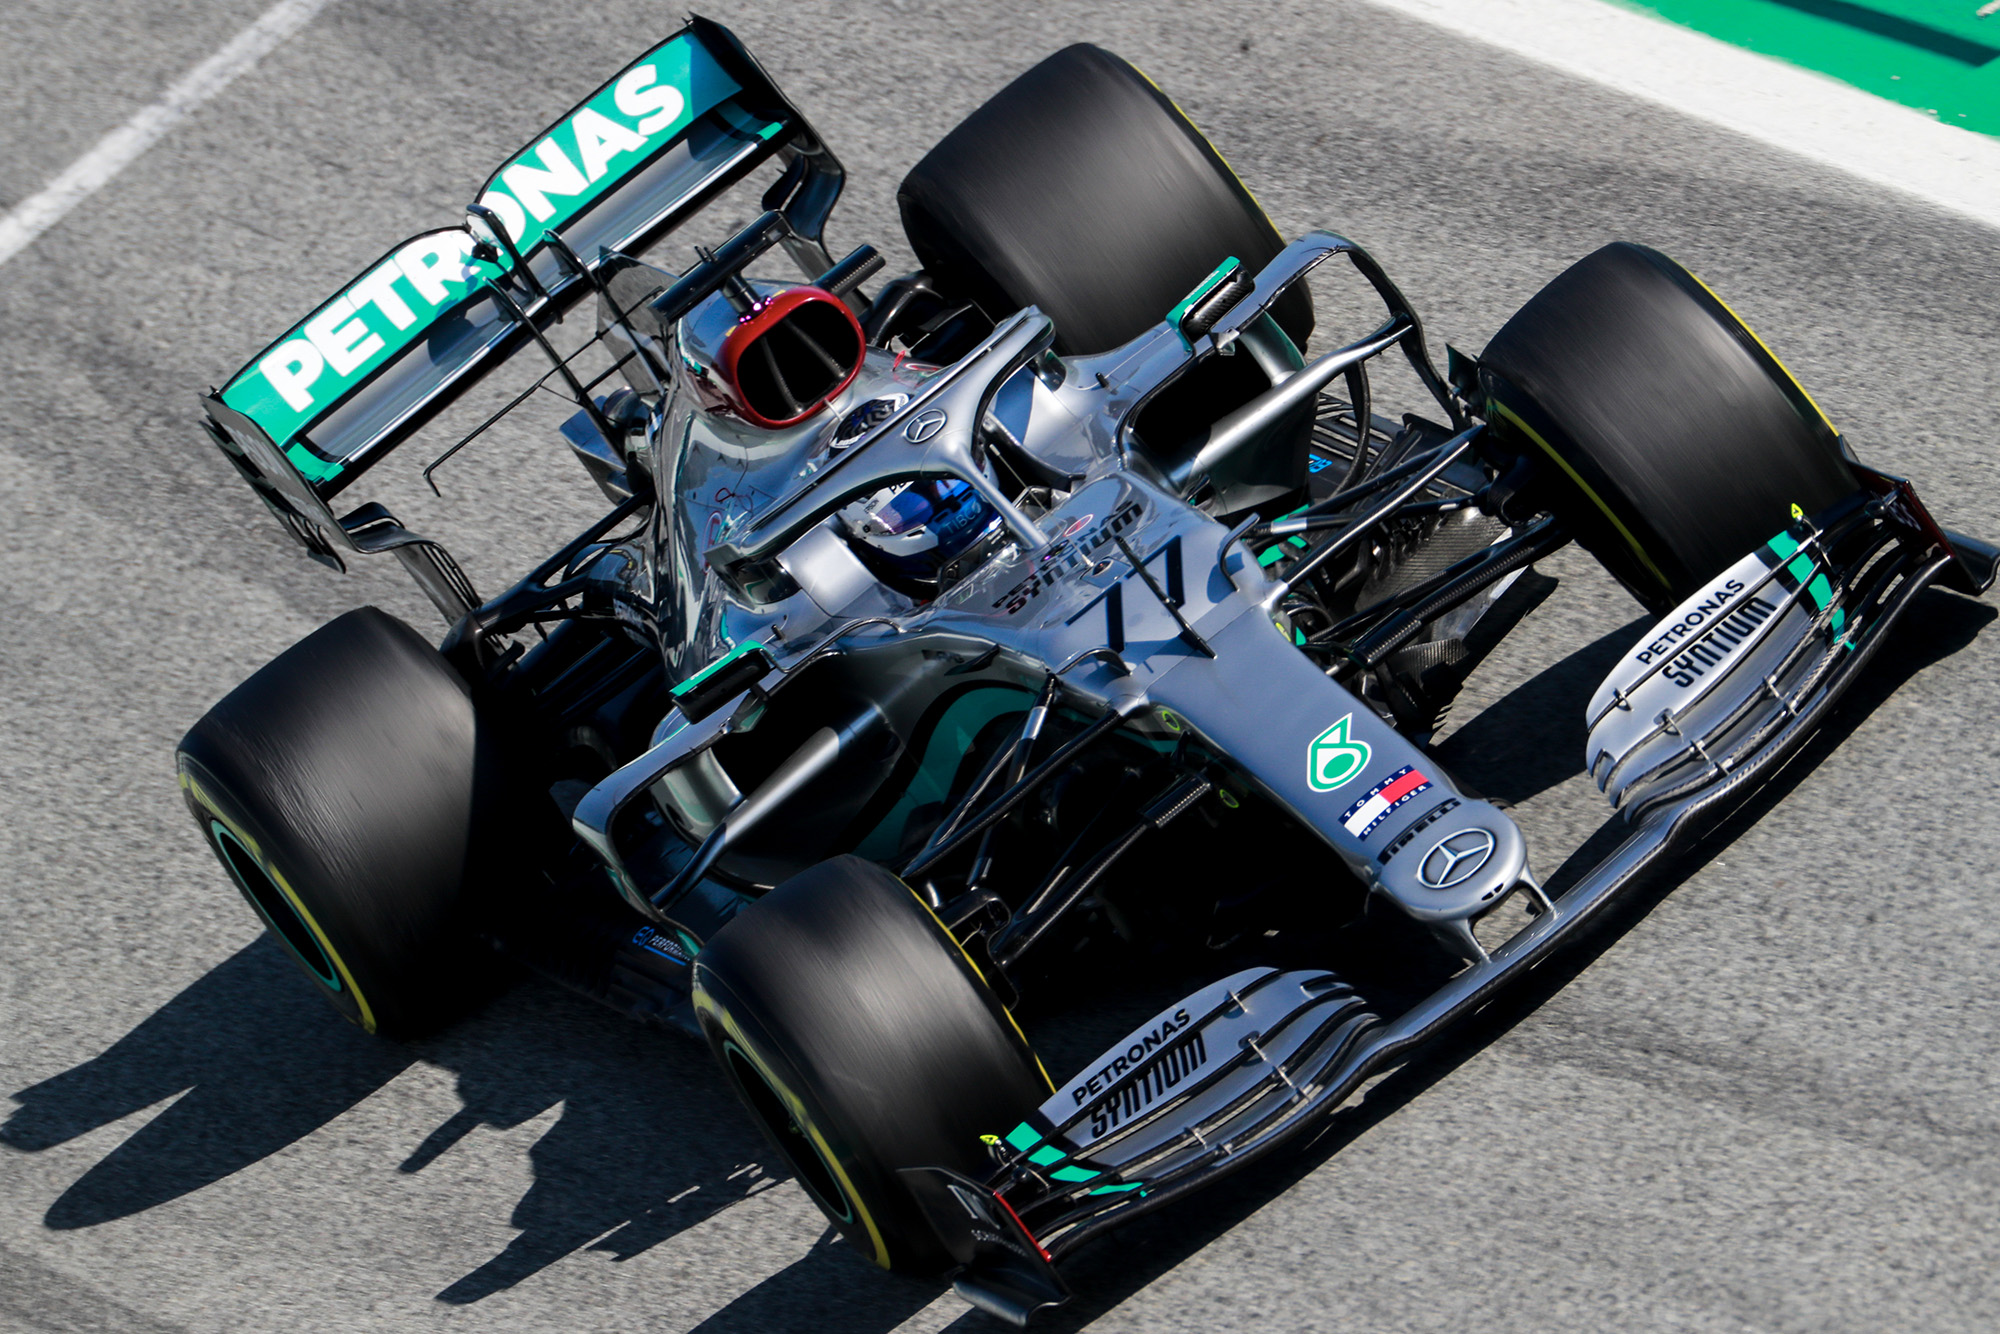 F1 testing: Mercedes wraps up week one of Formula 1 testing on top